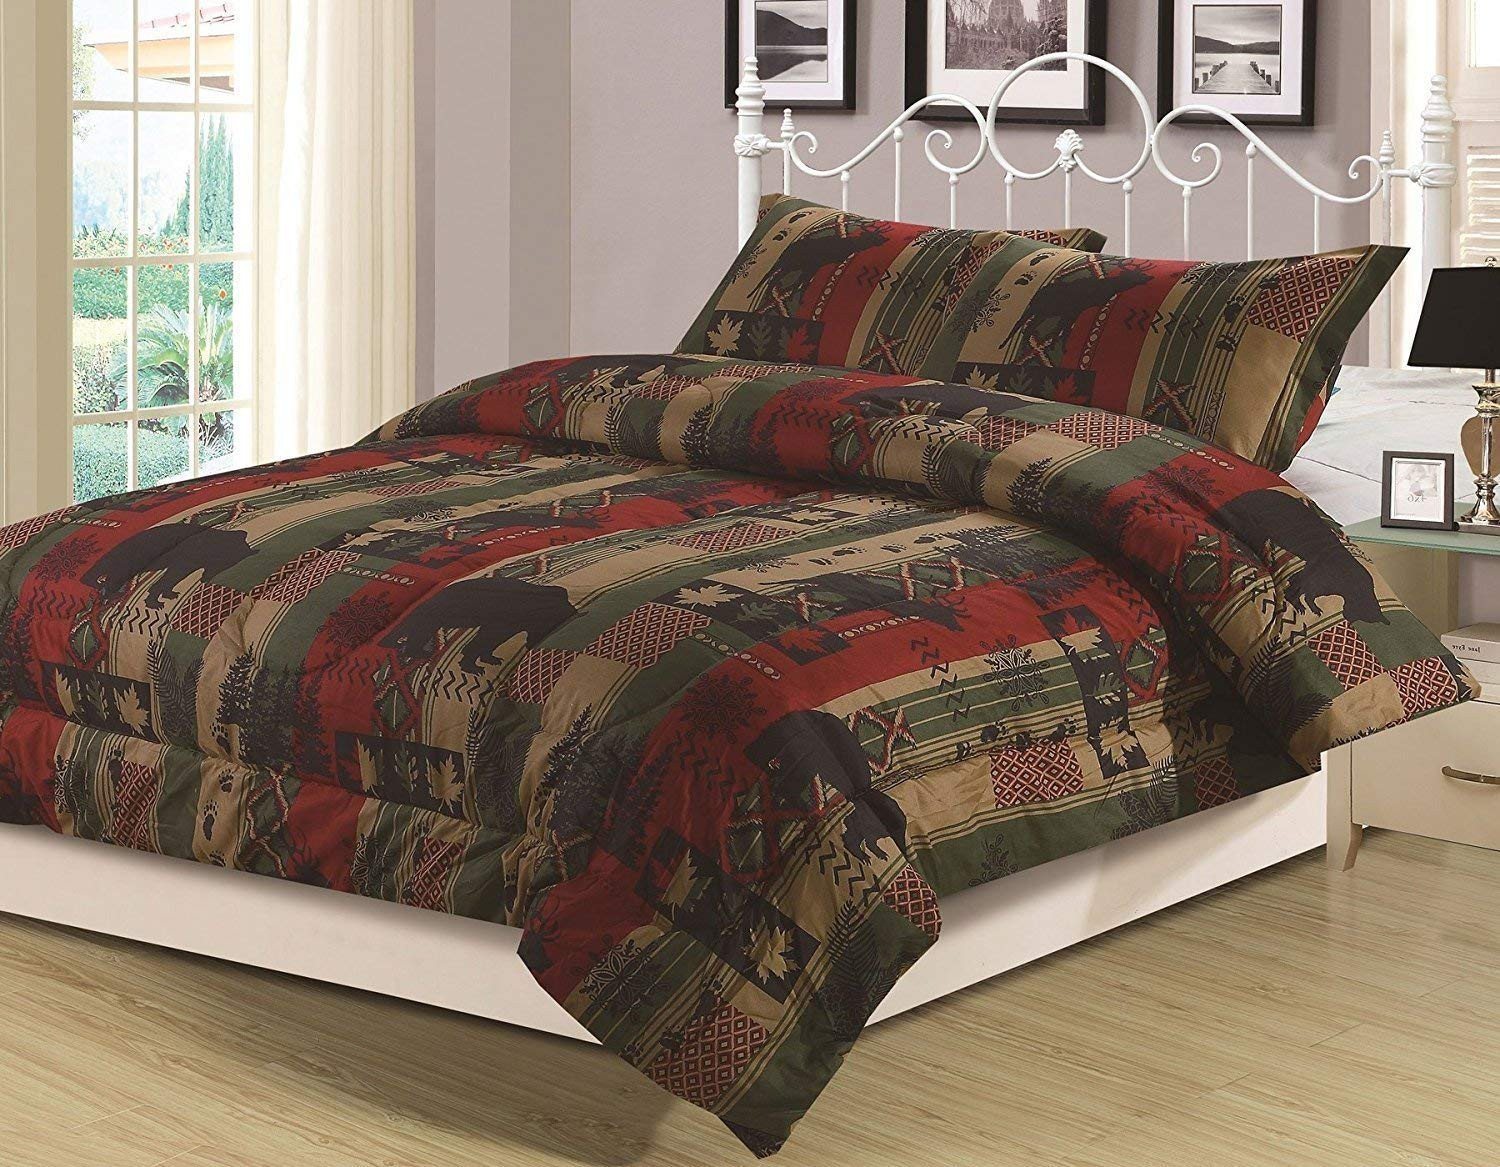 Cheap Twin Bedroom Set Awesome Howplumb Rustic southwest Twin forter 2 Piece Bedding Set Bear Cabin Lodge Nature Wildlife